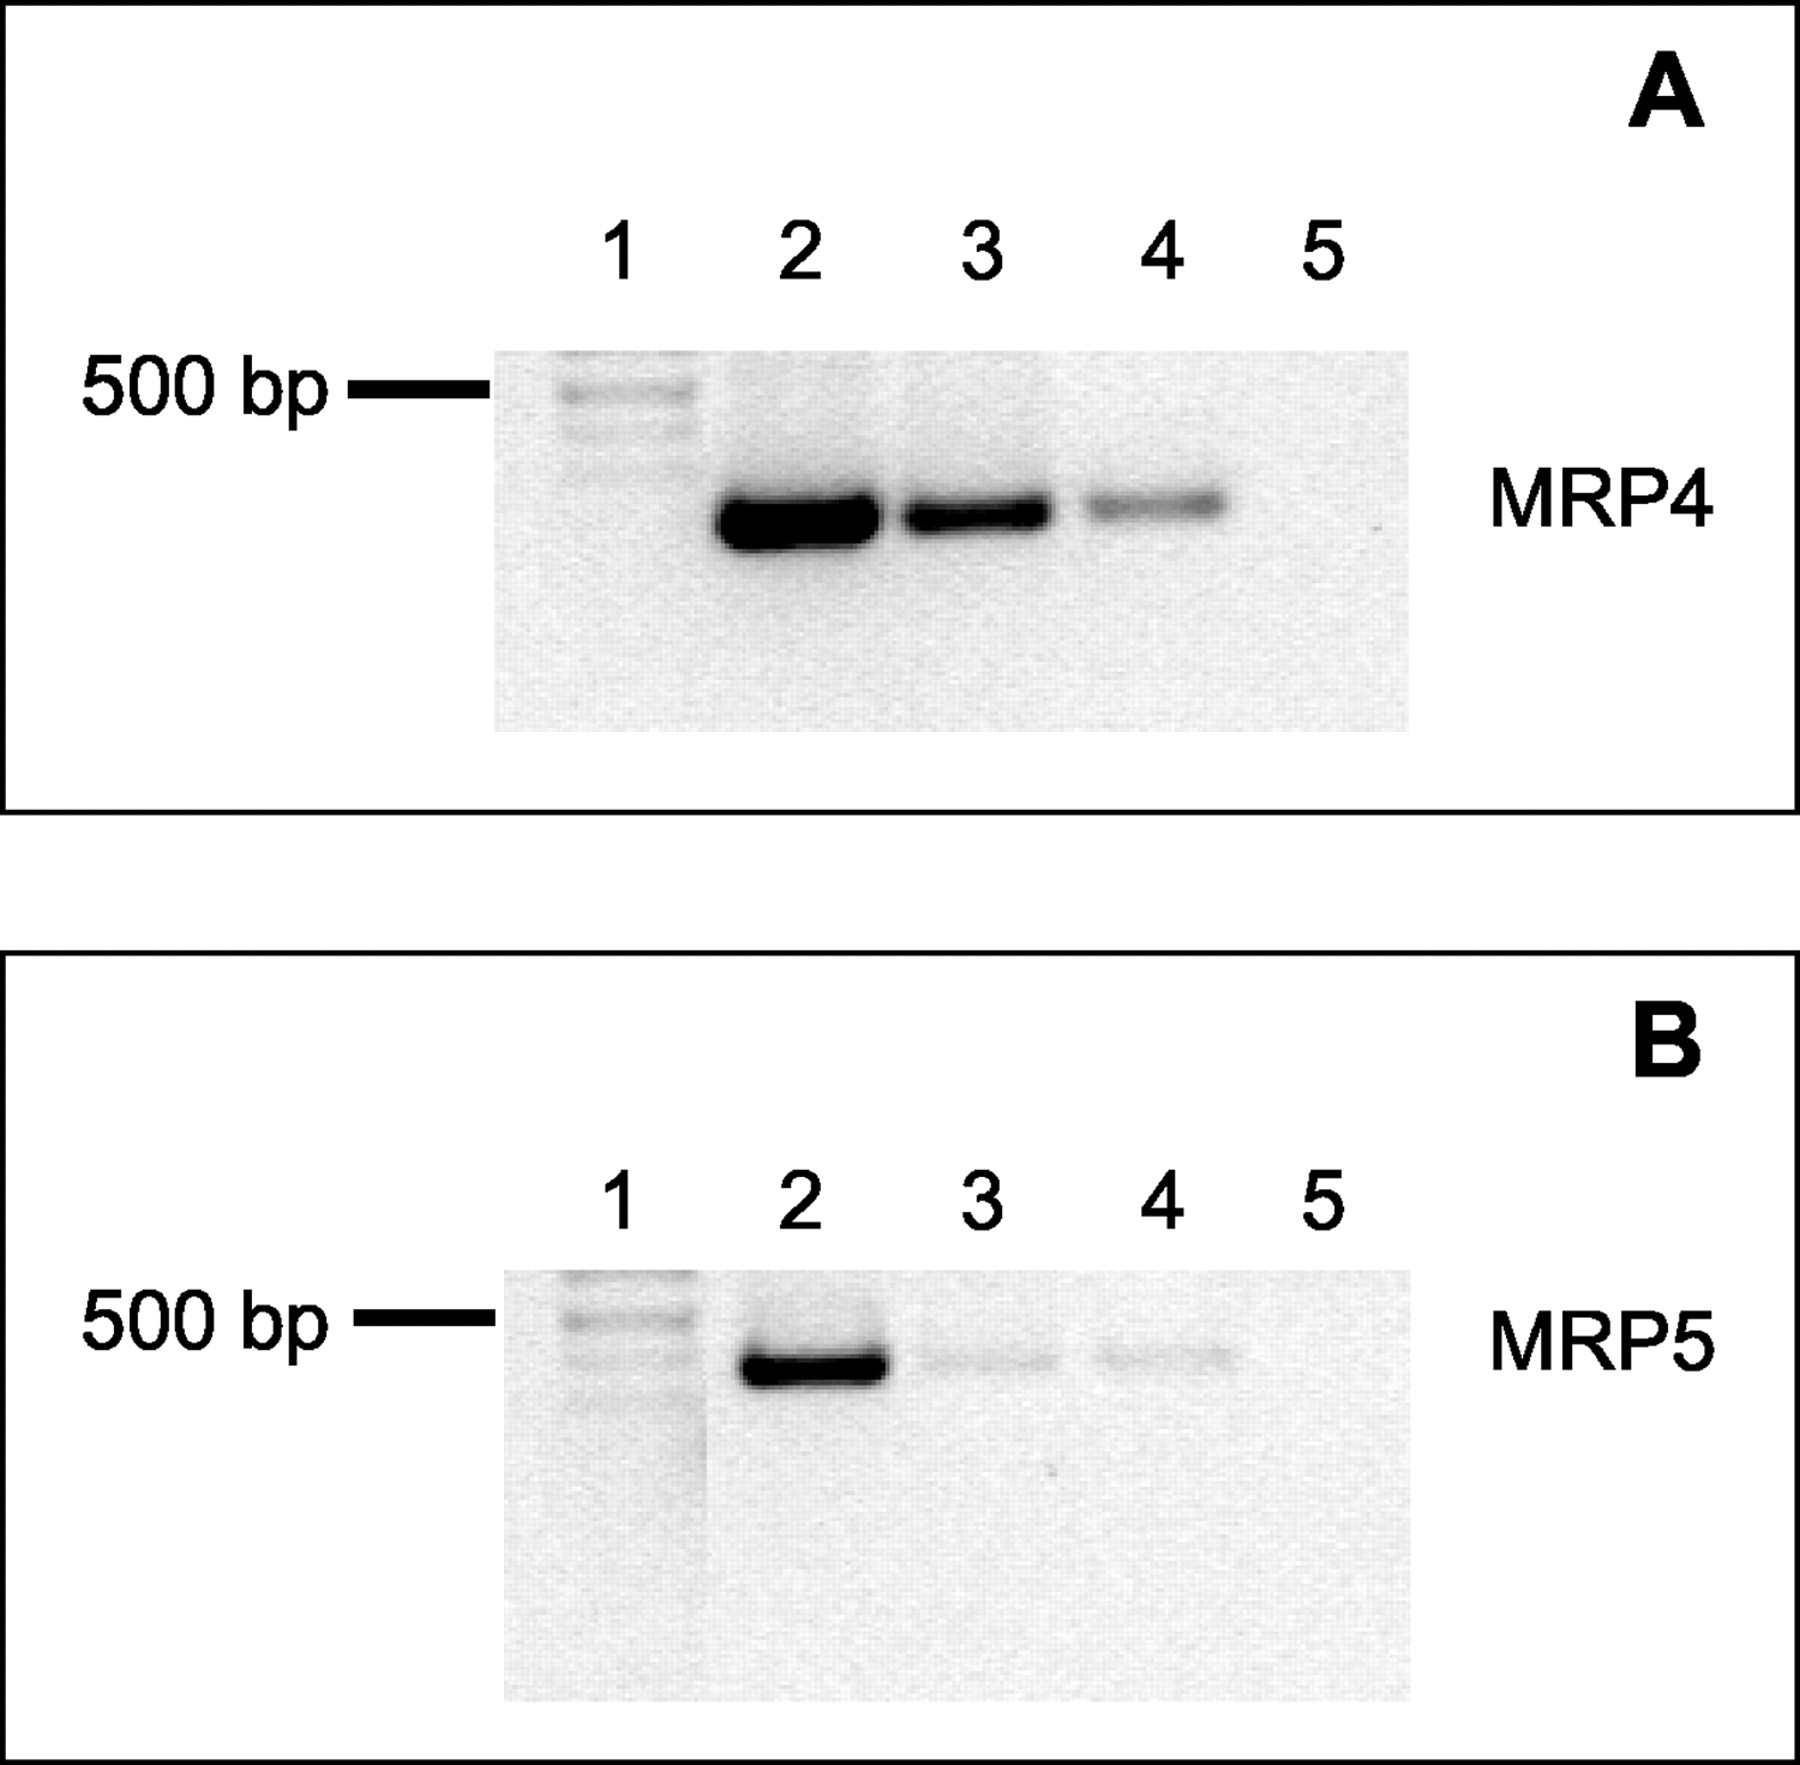 Multidrug Resistance Protein Mrp 4 And Mrp 5 Mediated